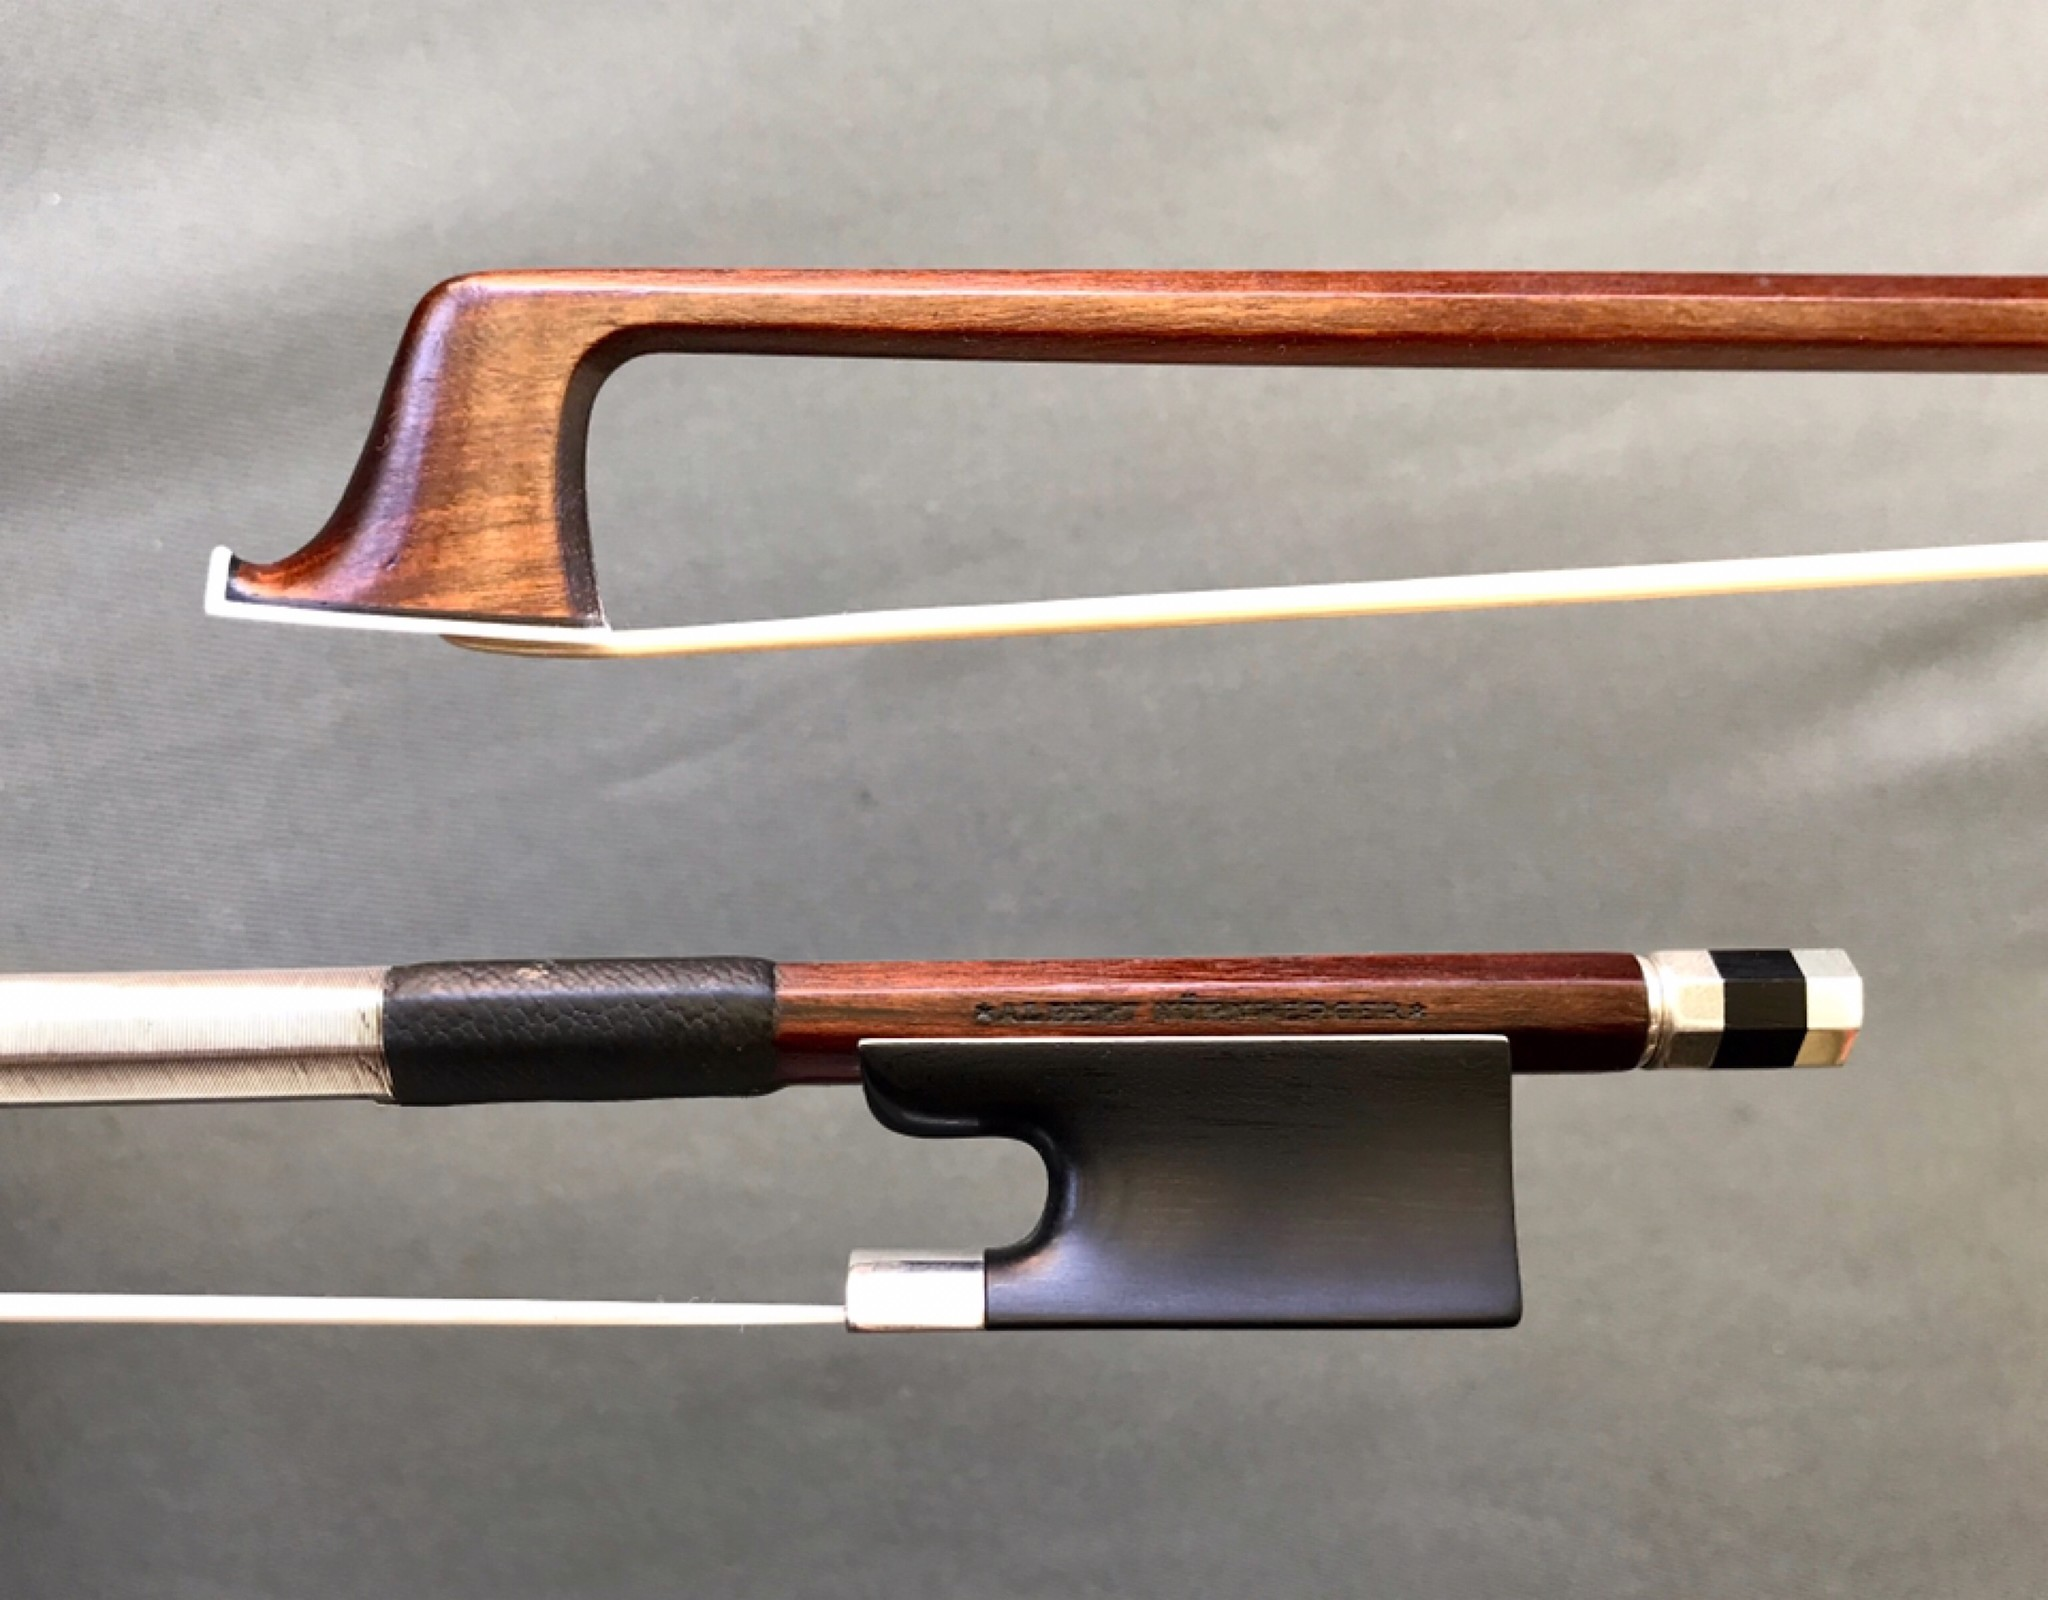 *ALBERT NÜRNBERGER* violin bow, silver & ebony, 60.4 g, GERMANY